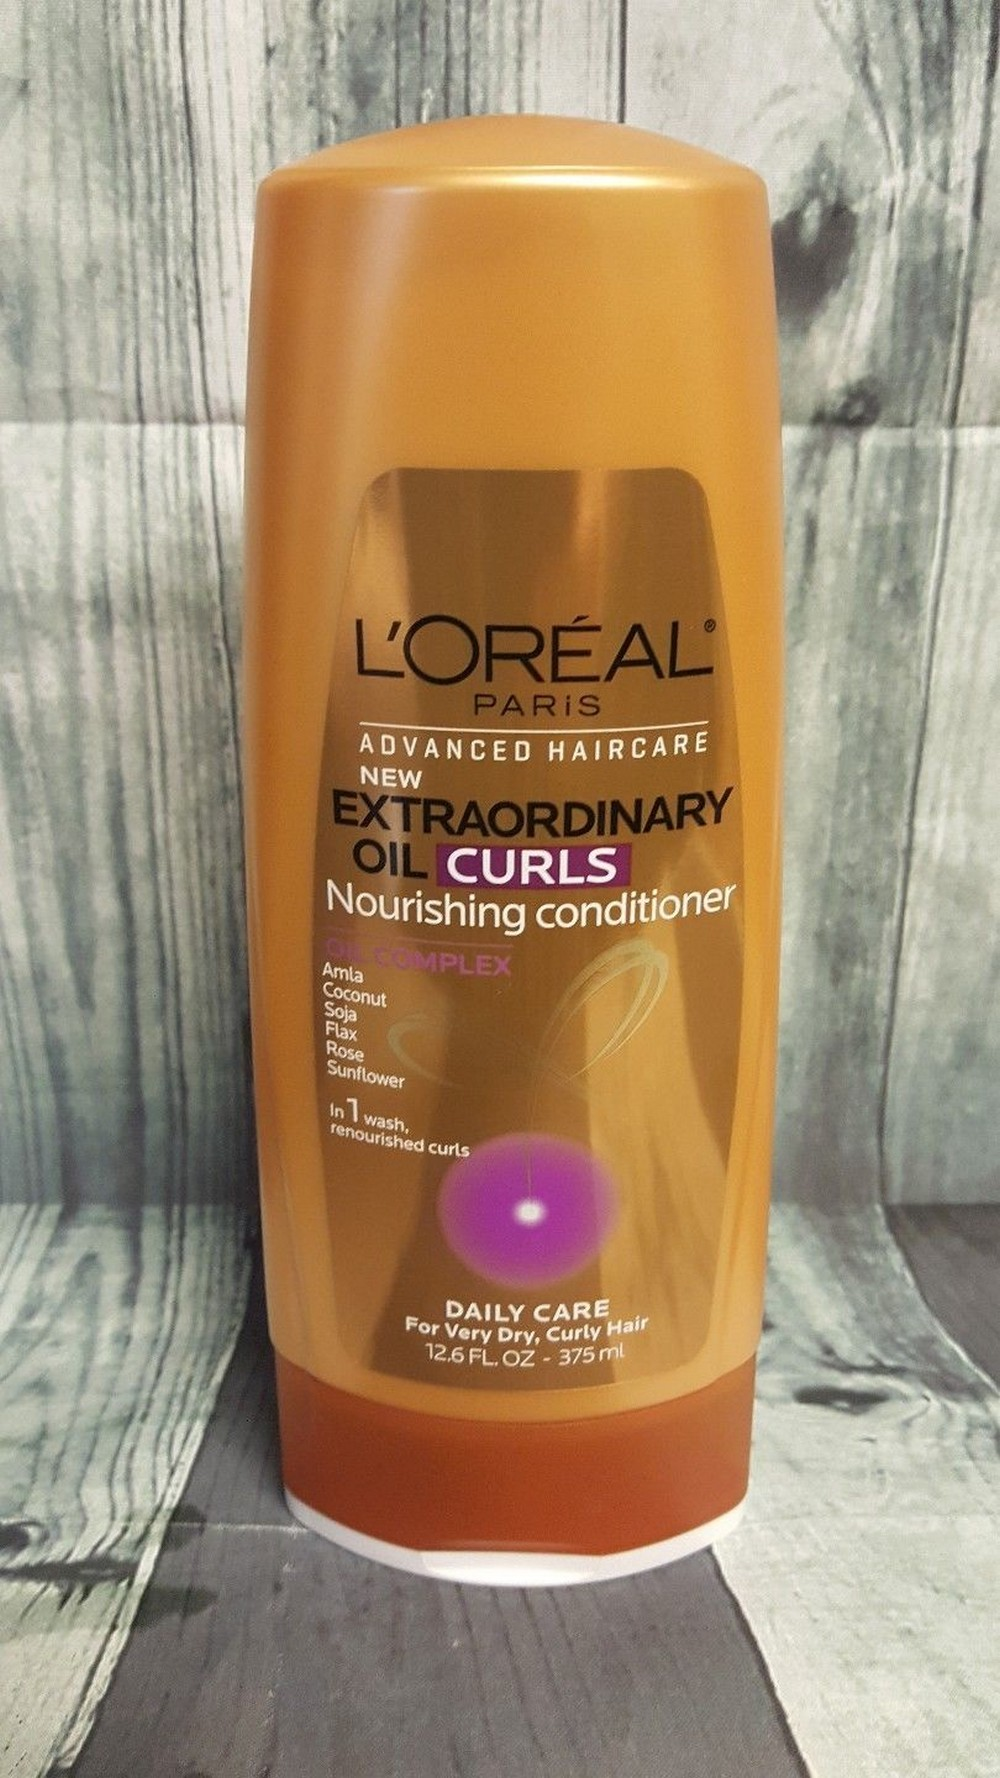 dau-xa-loreal-cham-soc-toc-extraordinary-oil-conditioner-02